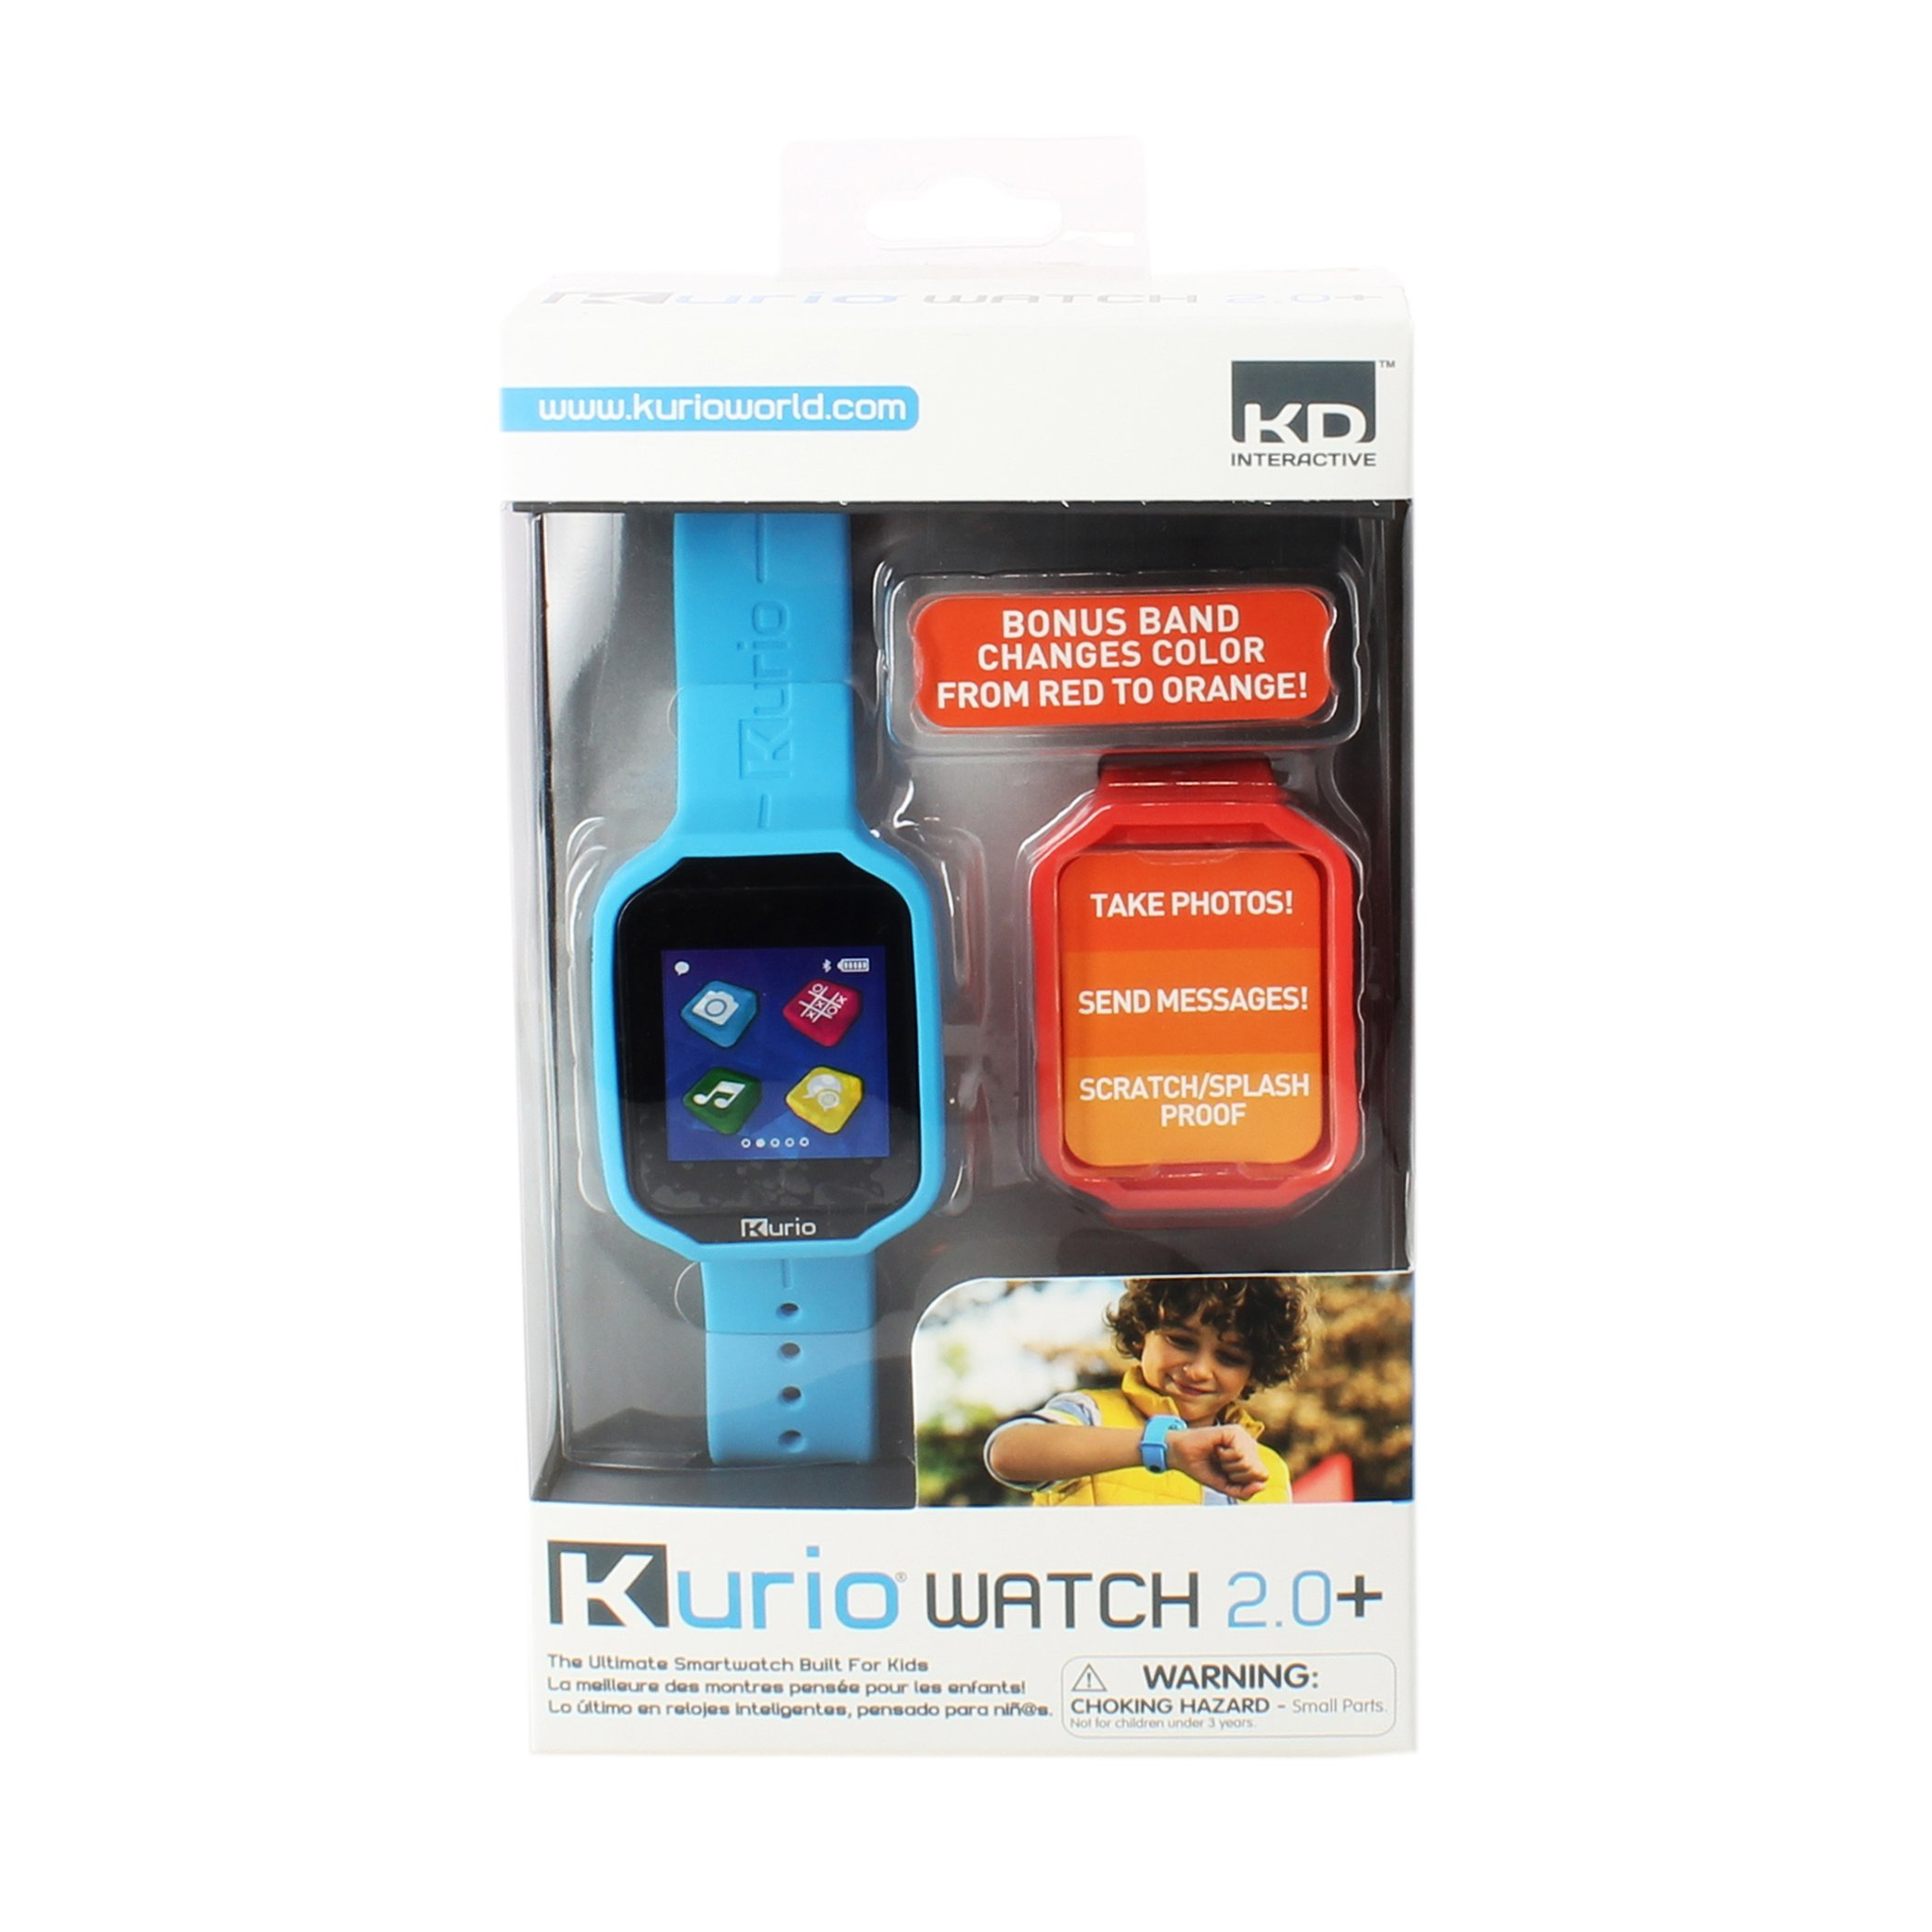 Kurio Watch 2.0+ The Ultimate Smartwatch Built for Kids with 2 Bands, Blue and Color Change by KD Interactive (Image #7)